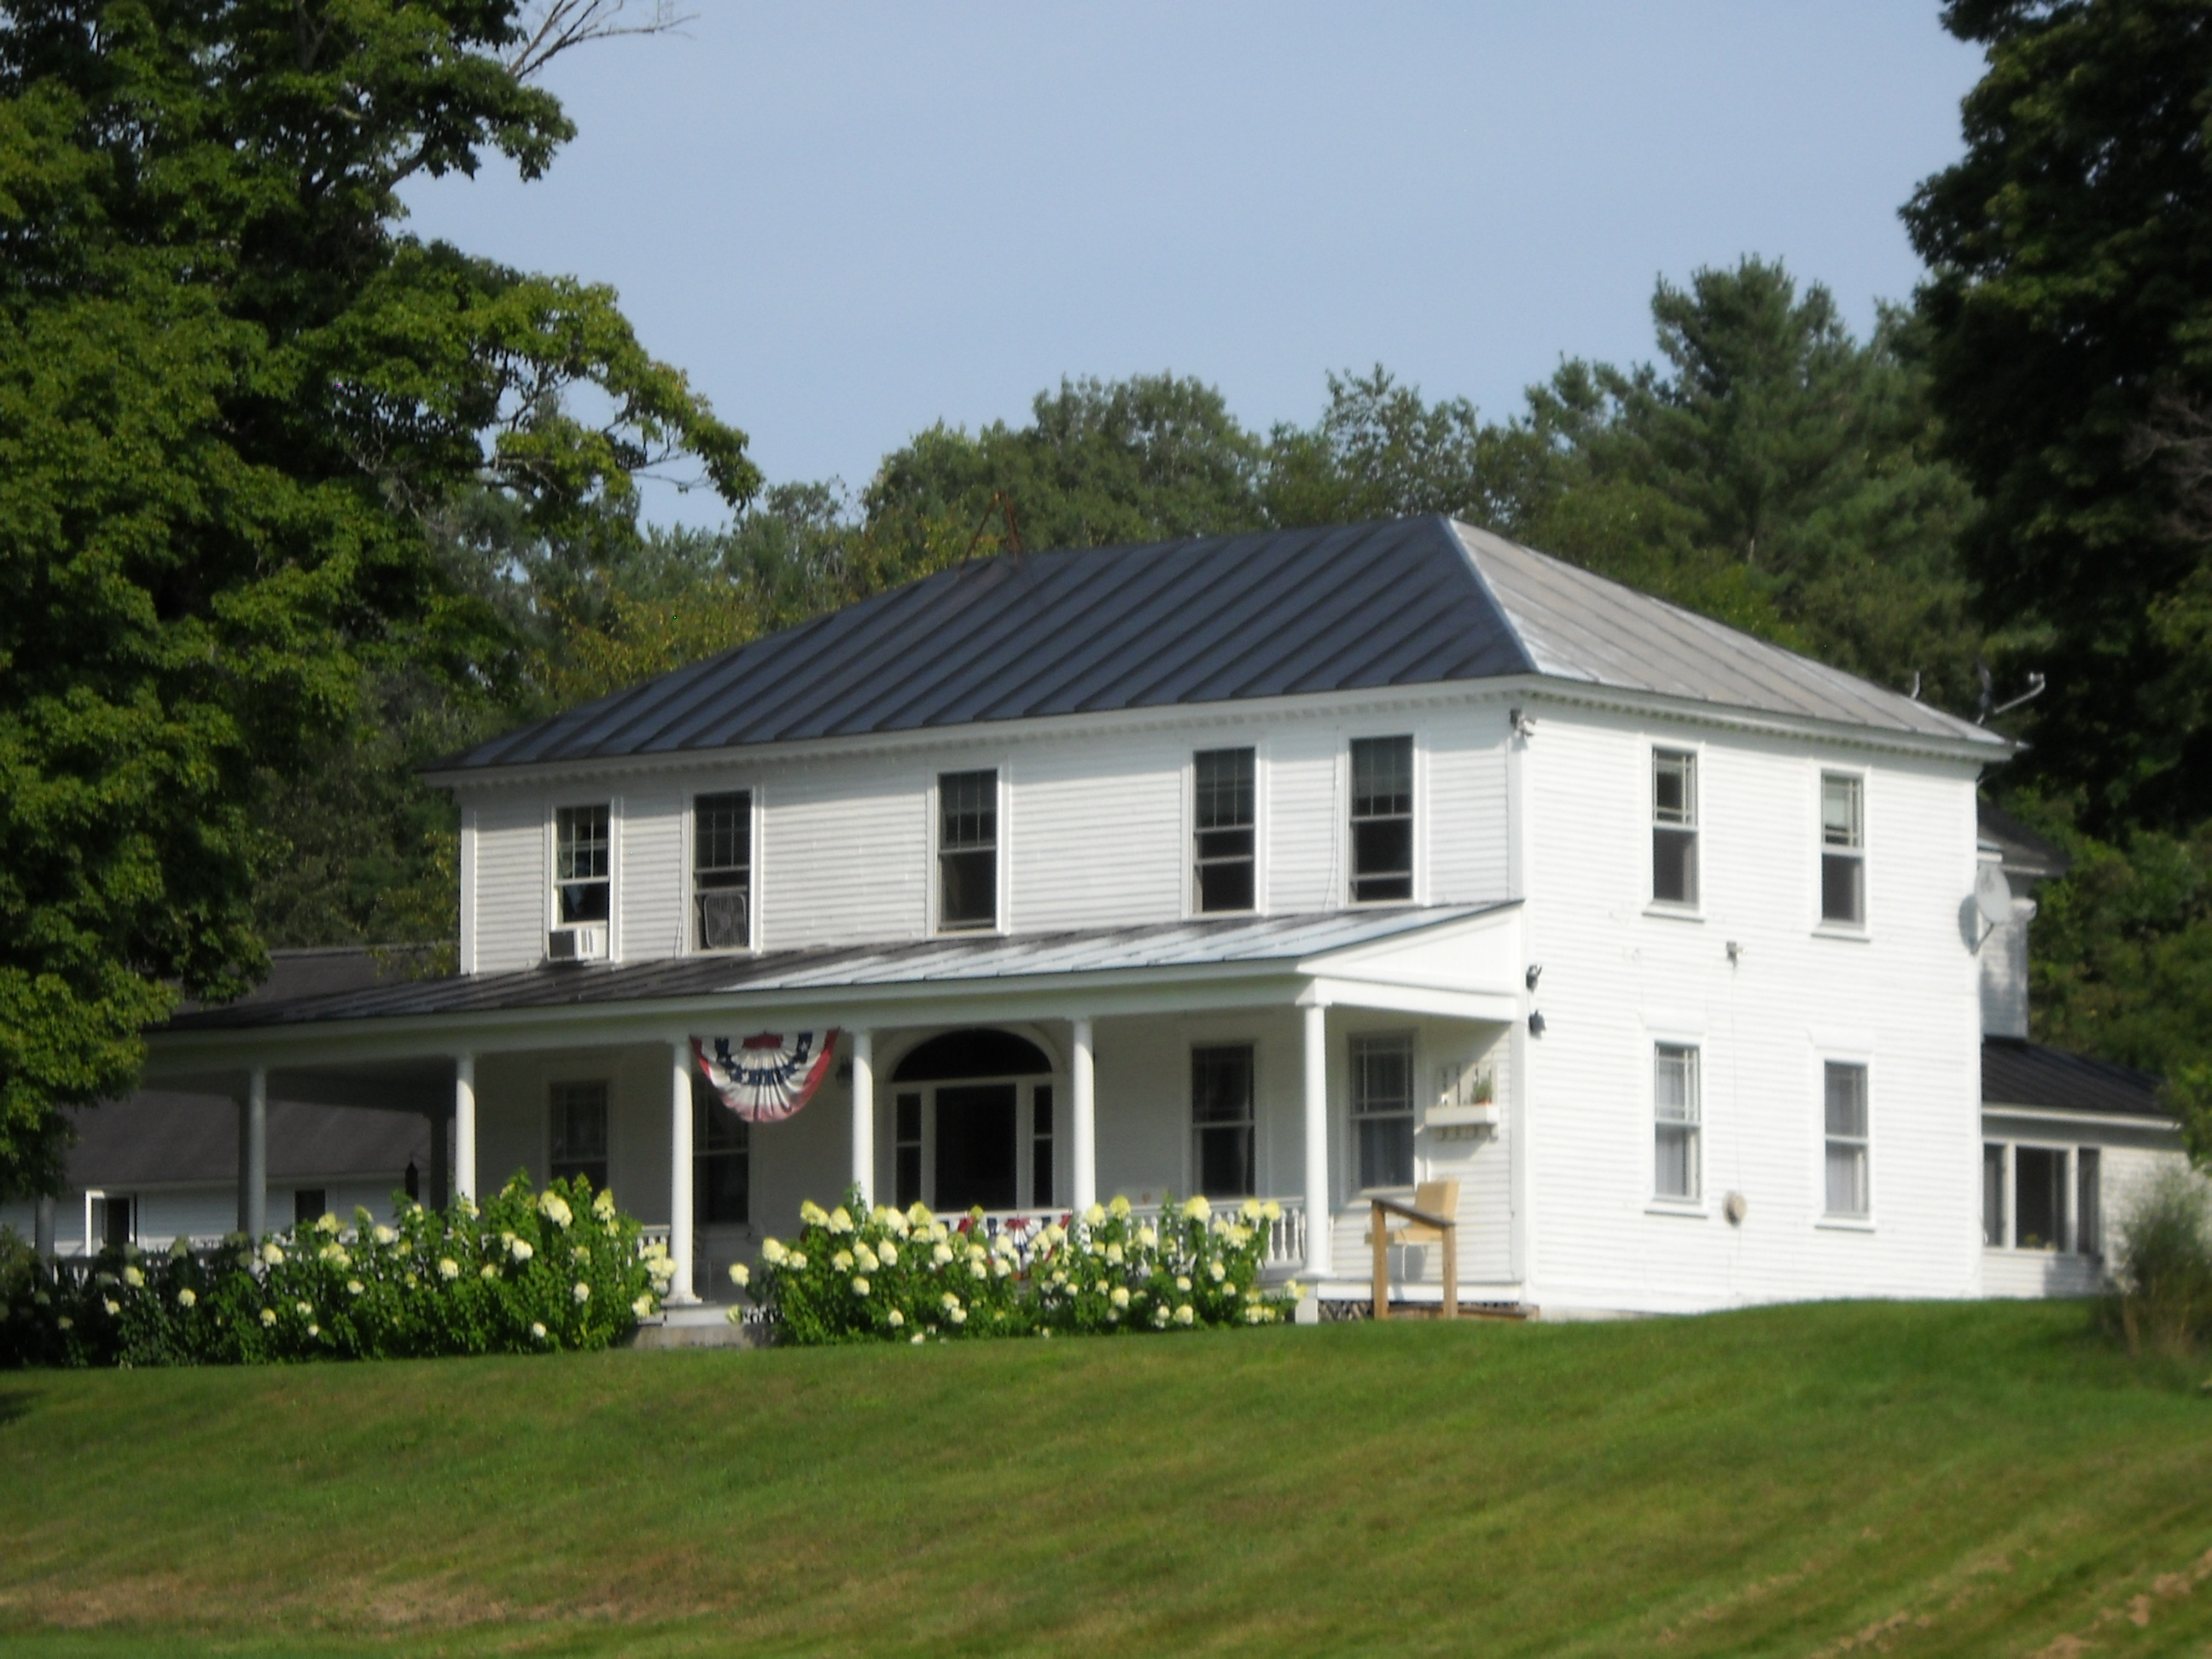 Multi-Family Home for Sale at 394 Rte 10, Orford Orford, New Hampshire, 03777 United States